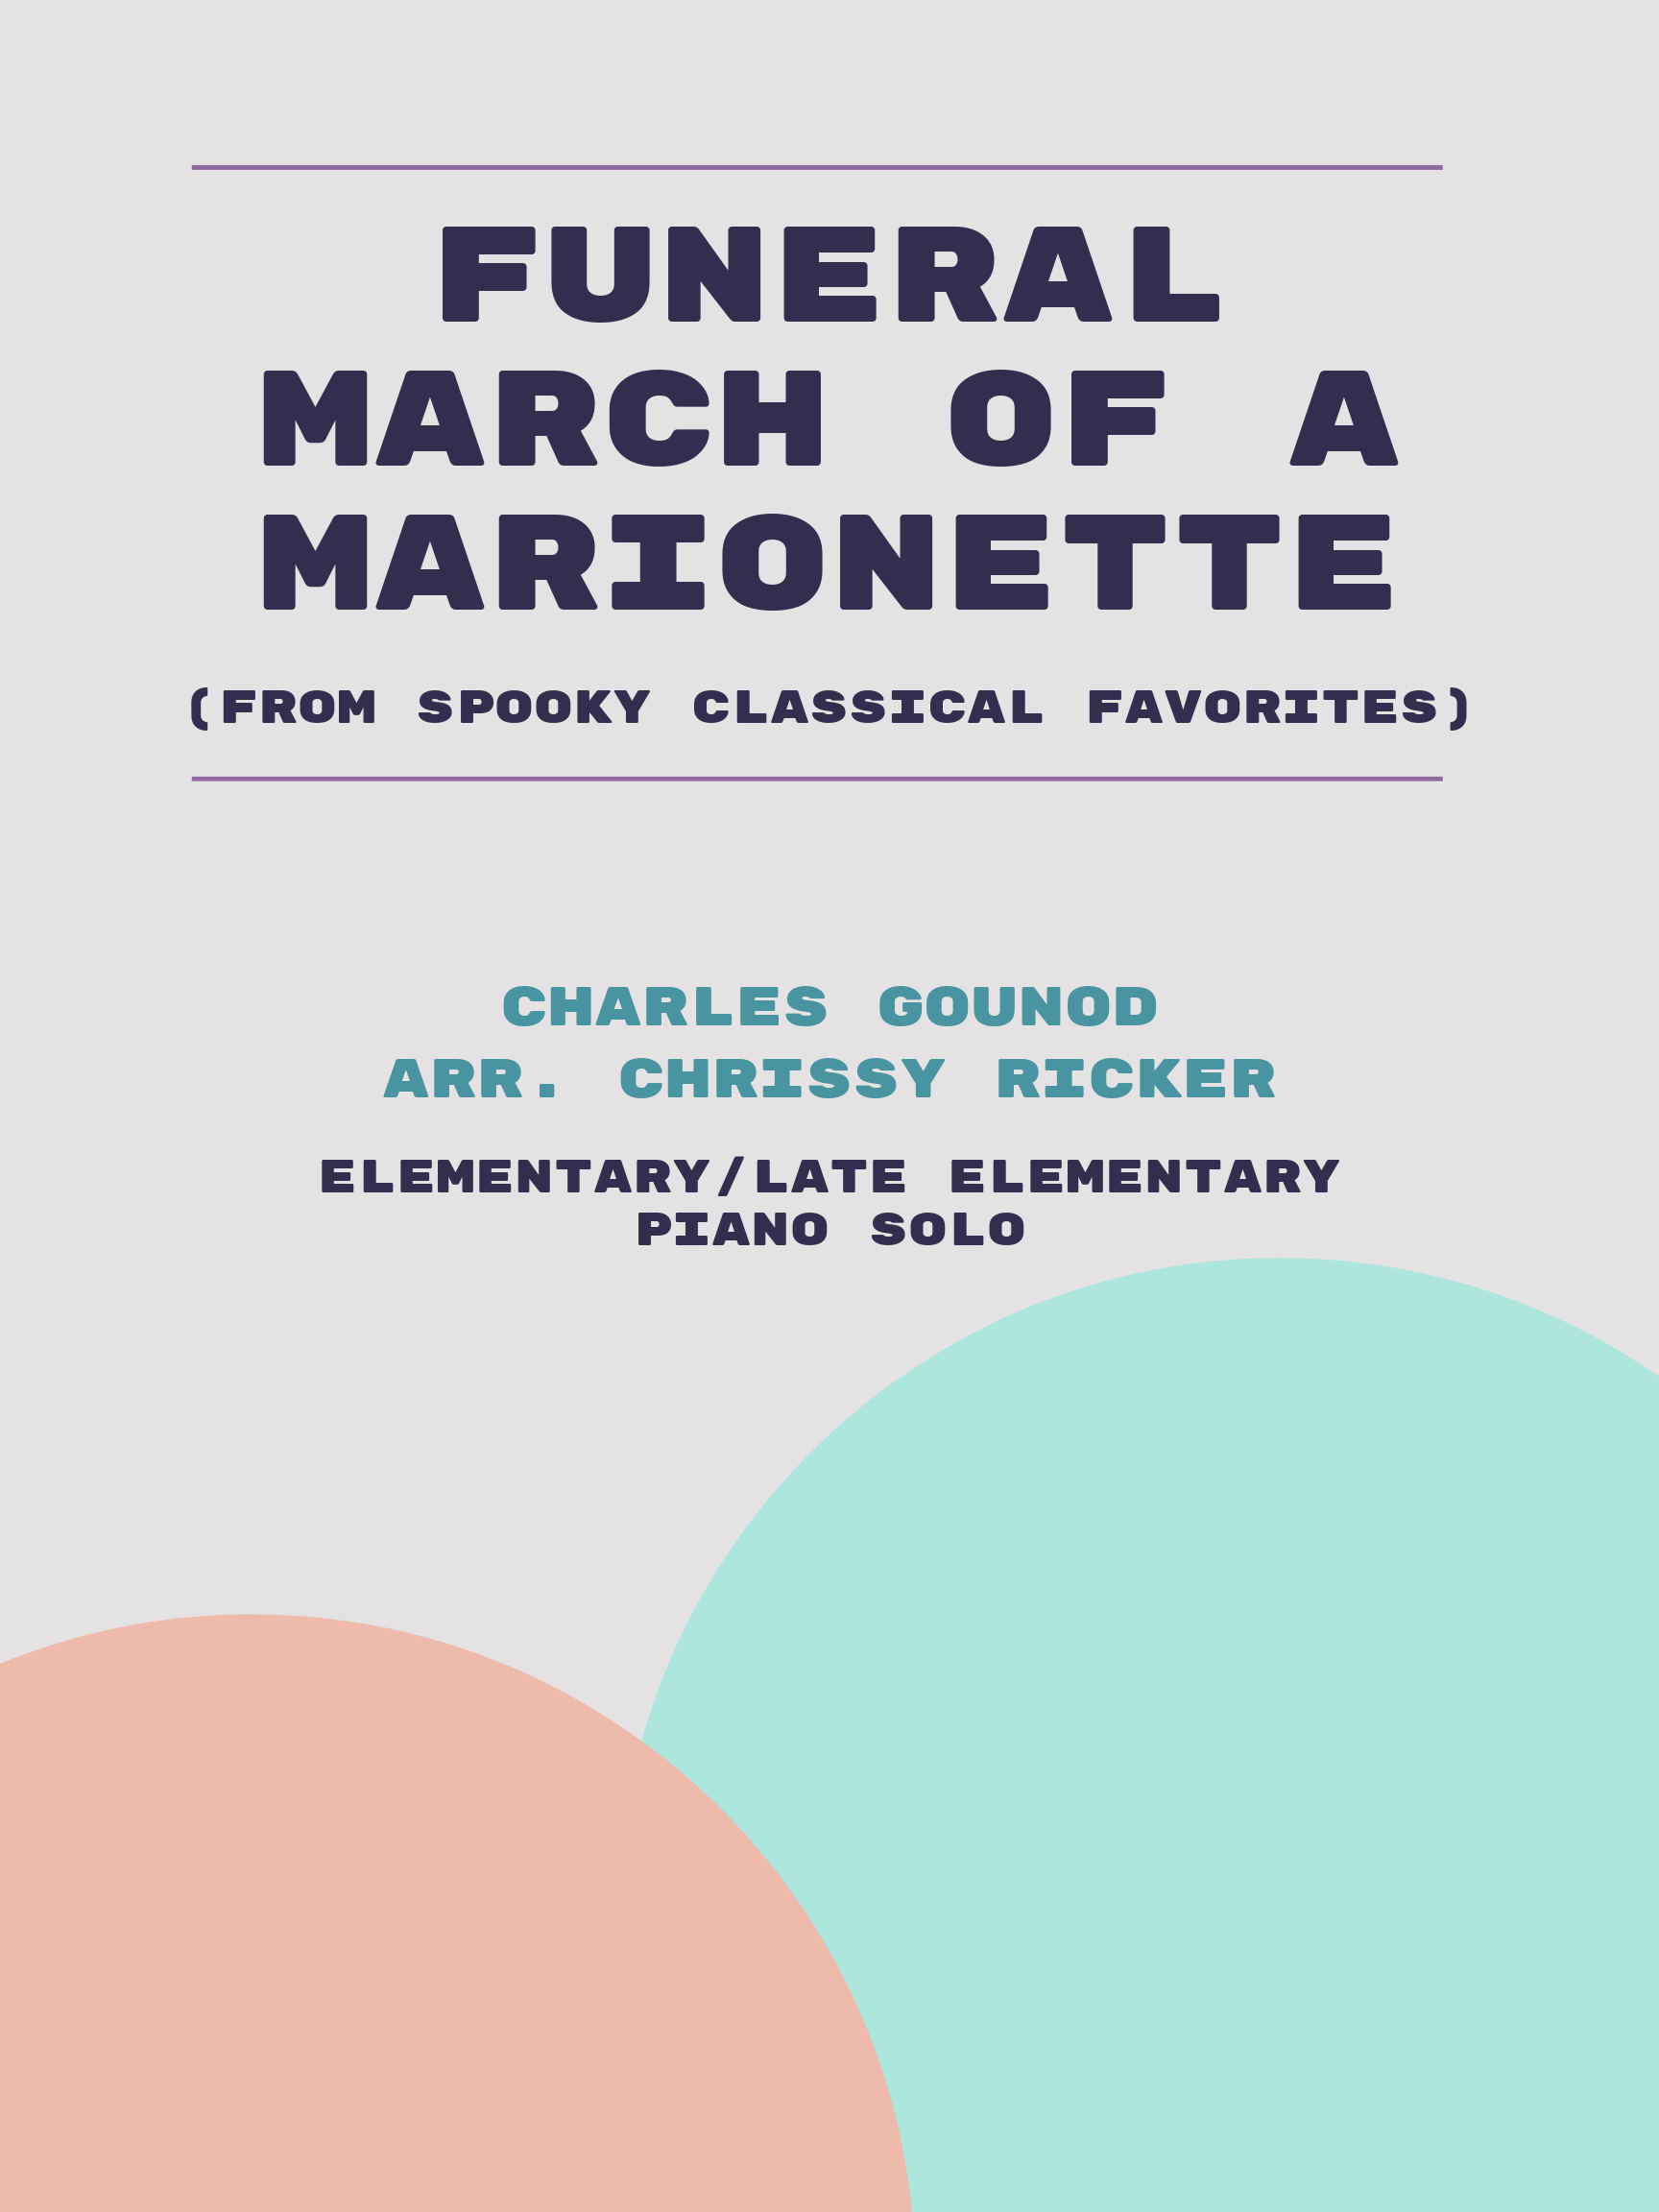 Funeral March of a Marionette by Charles Gounod